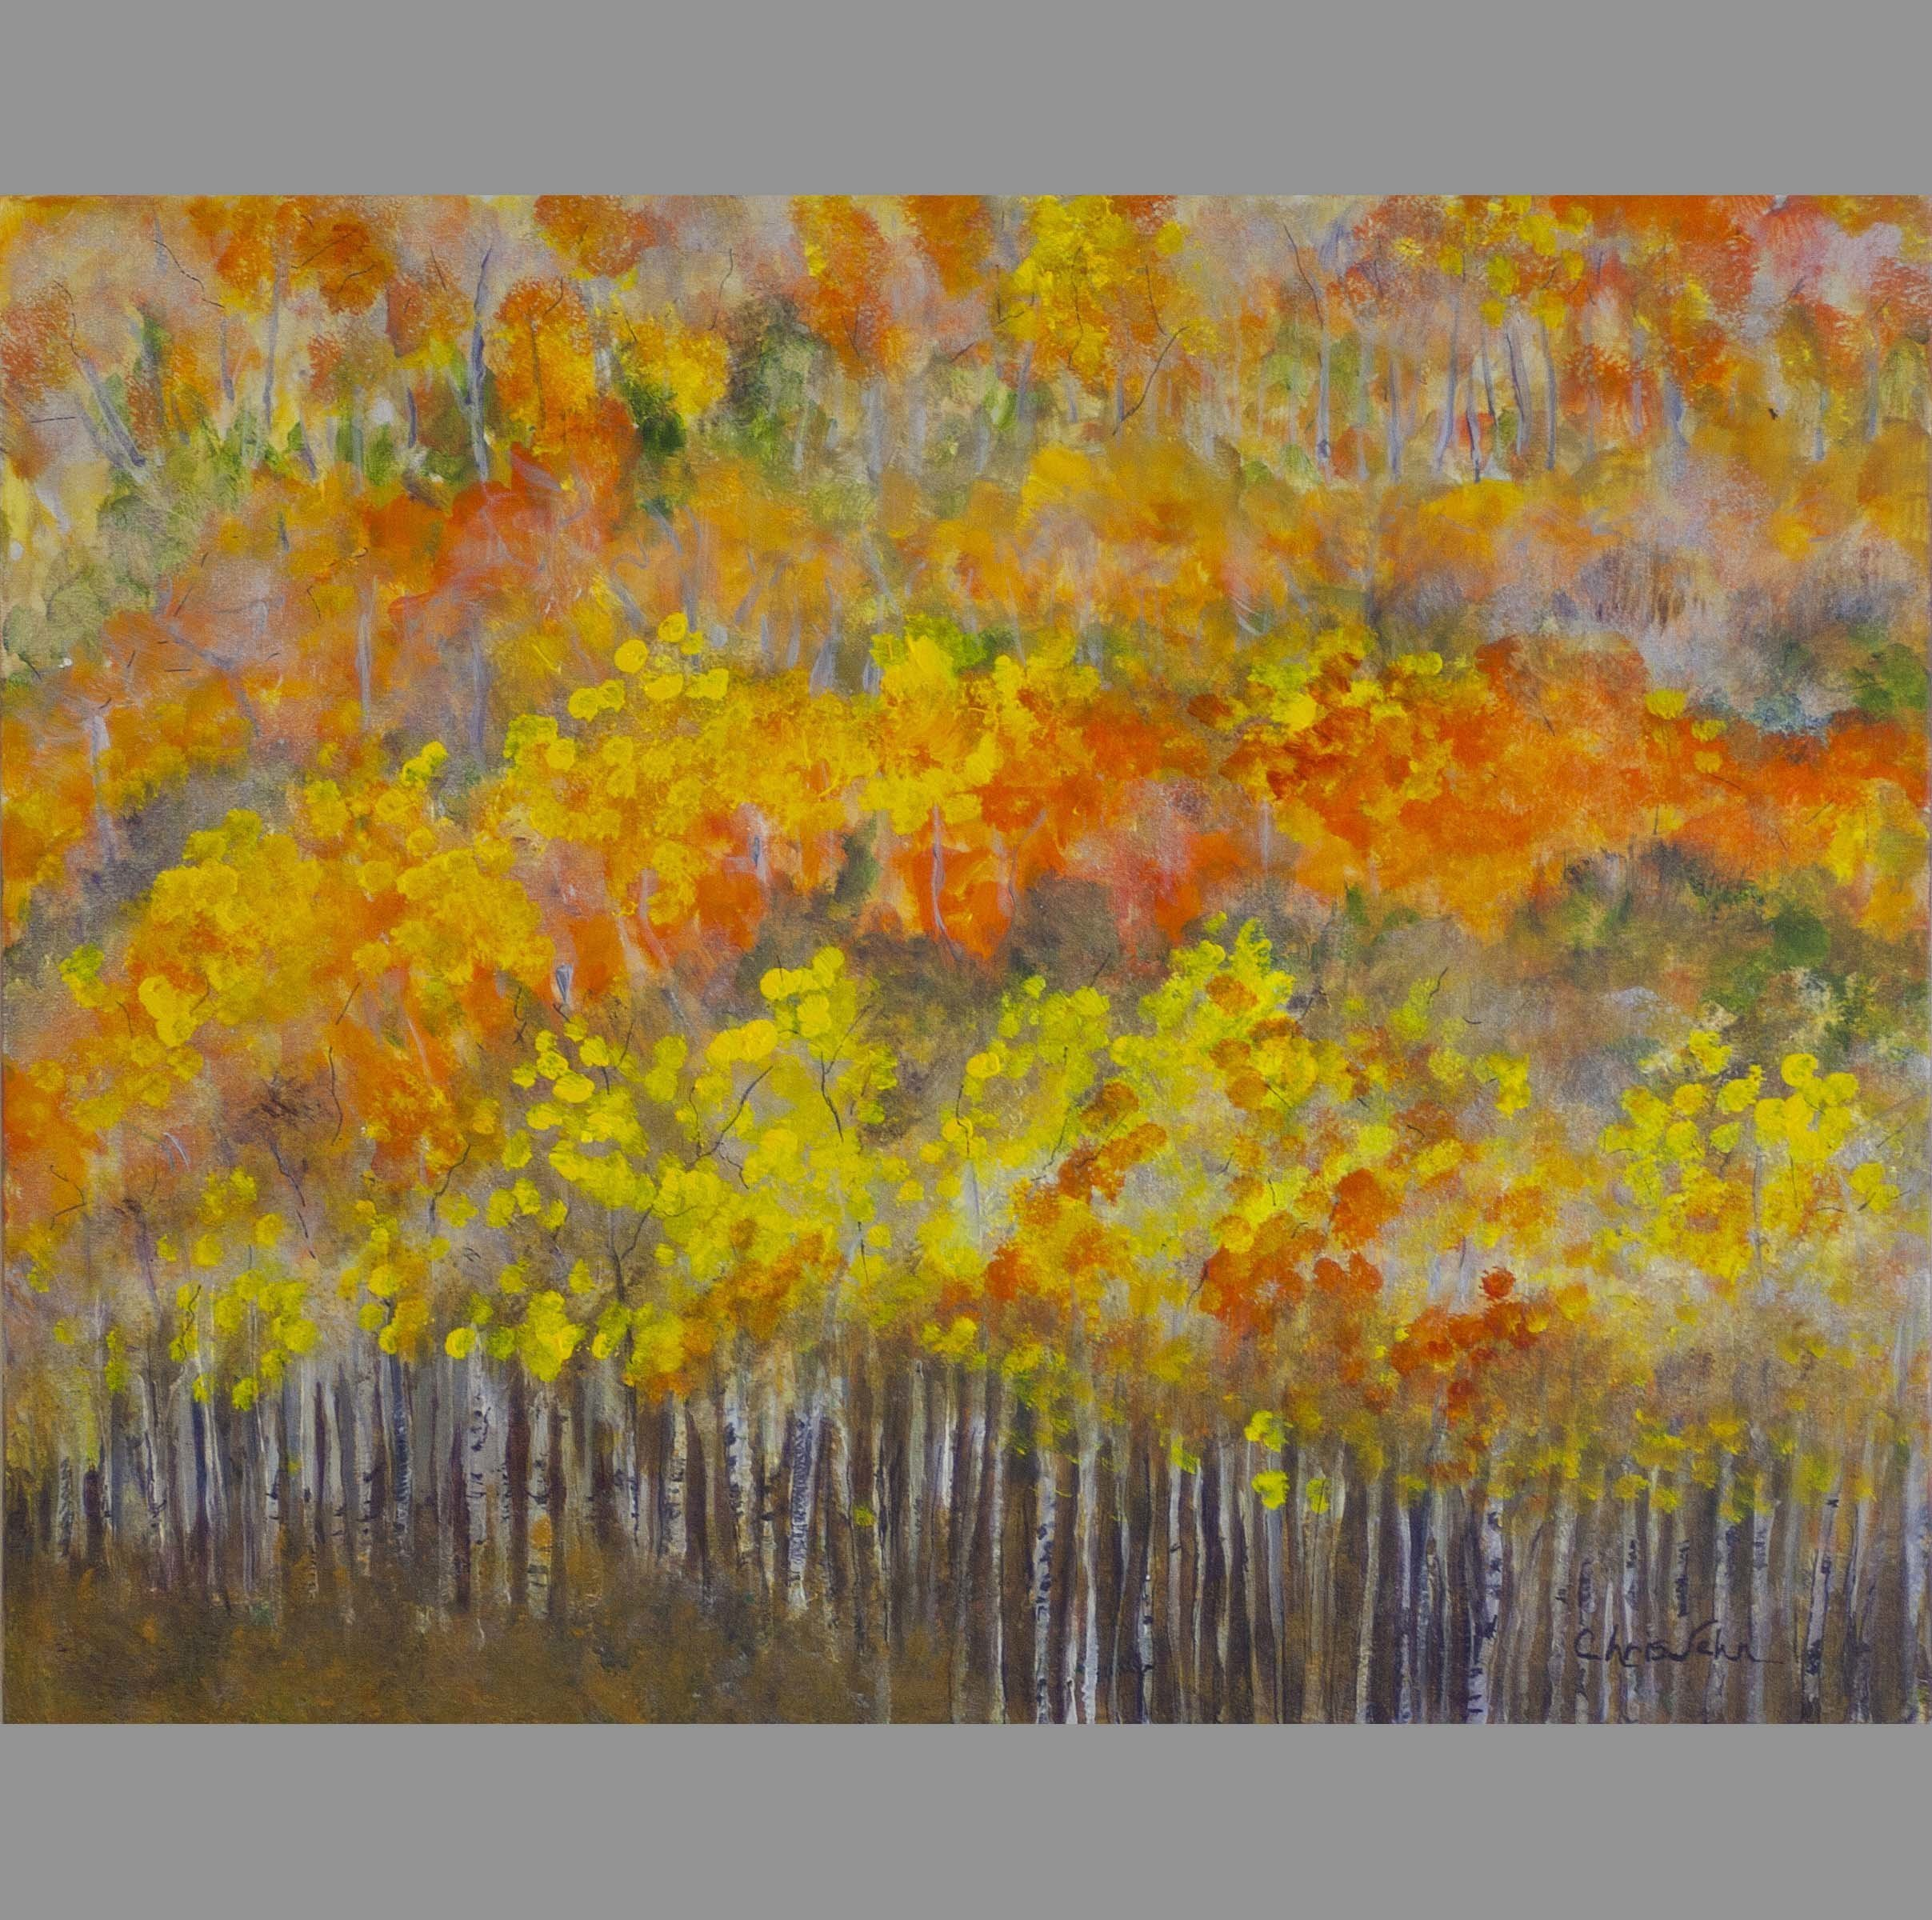 Chris Jehn; Aspen Mountain Side, 2016, Original Painting Acrylic, 20 x 16 inches. Artwork description: 241 In Colorado you often see panoramas of mountain sides with aspen trees. The colors and the layers are inspiring, and a challenge to paint. This is one of my favorite paintings. Original artwork by Chris Jehn...